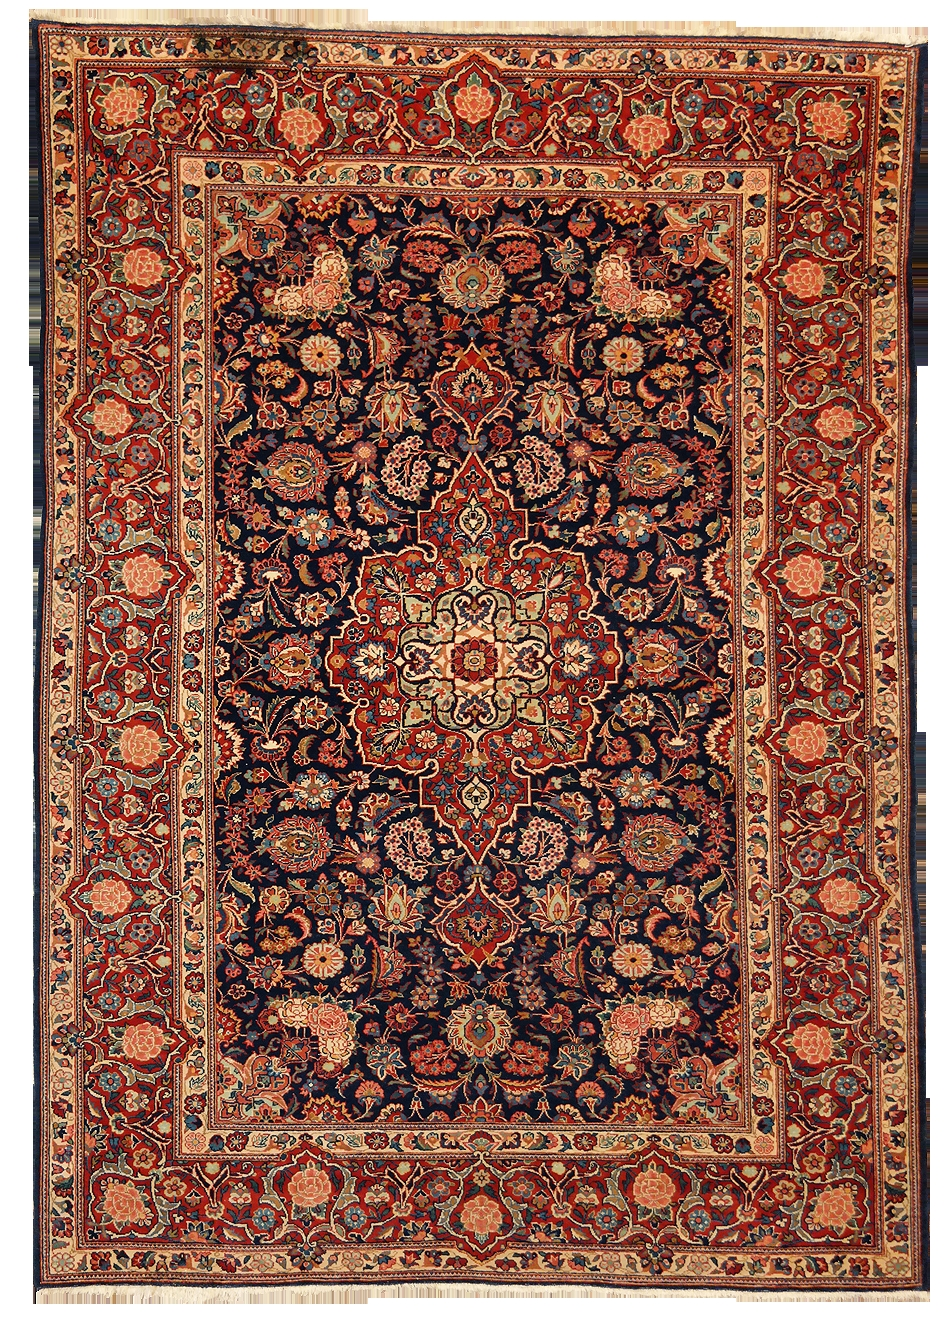 kesan antique persian carpet pab 003 size 203 x 136 cm